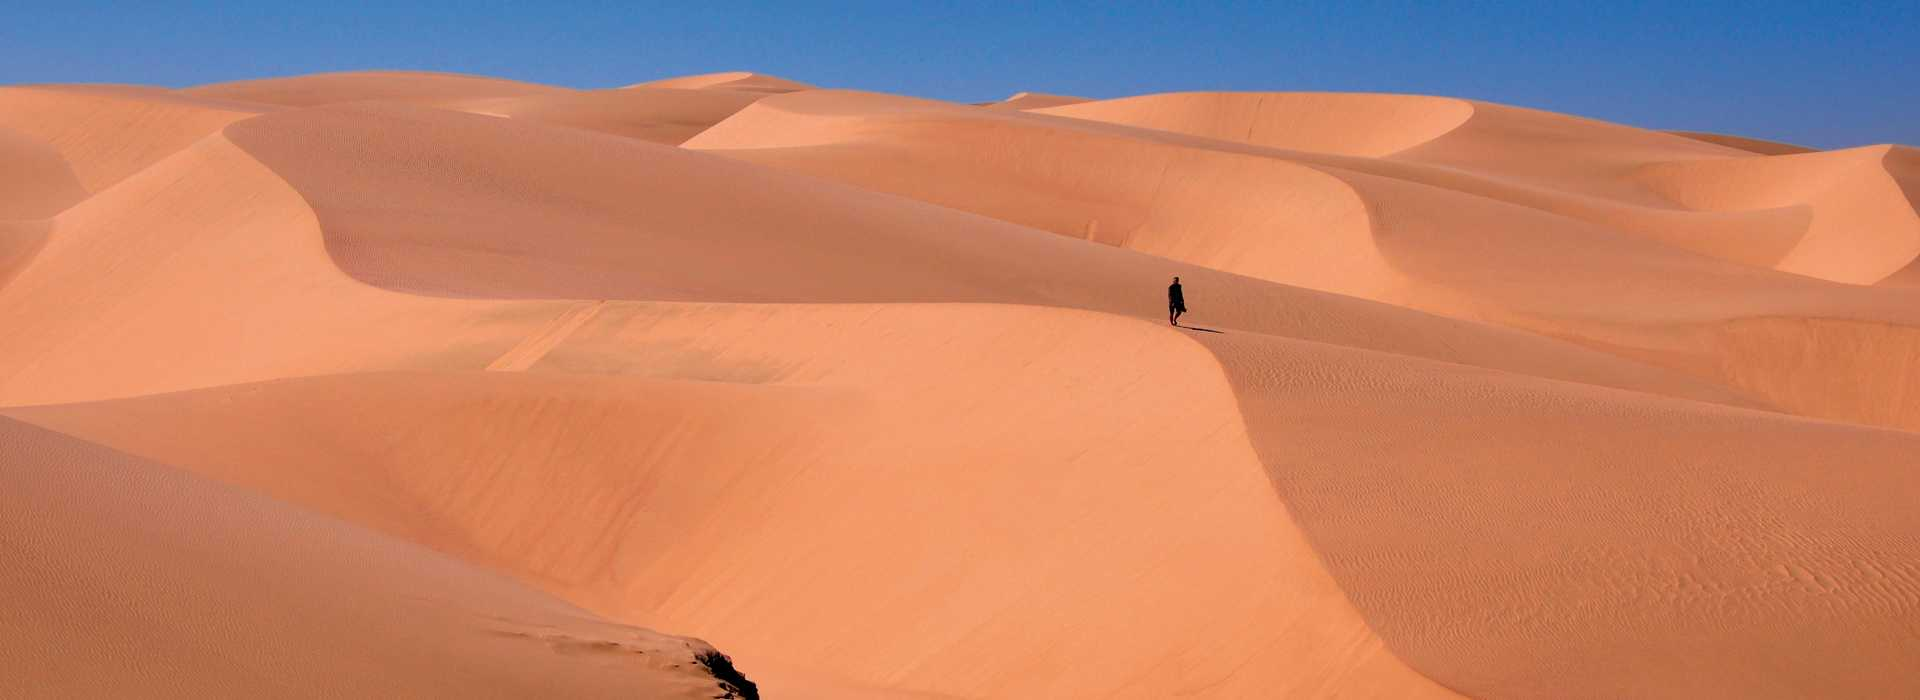 Man Climbing The Sand Dunes At Sossusvlei